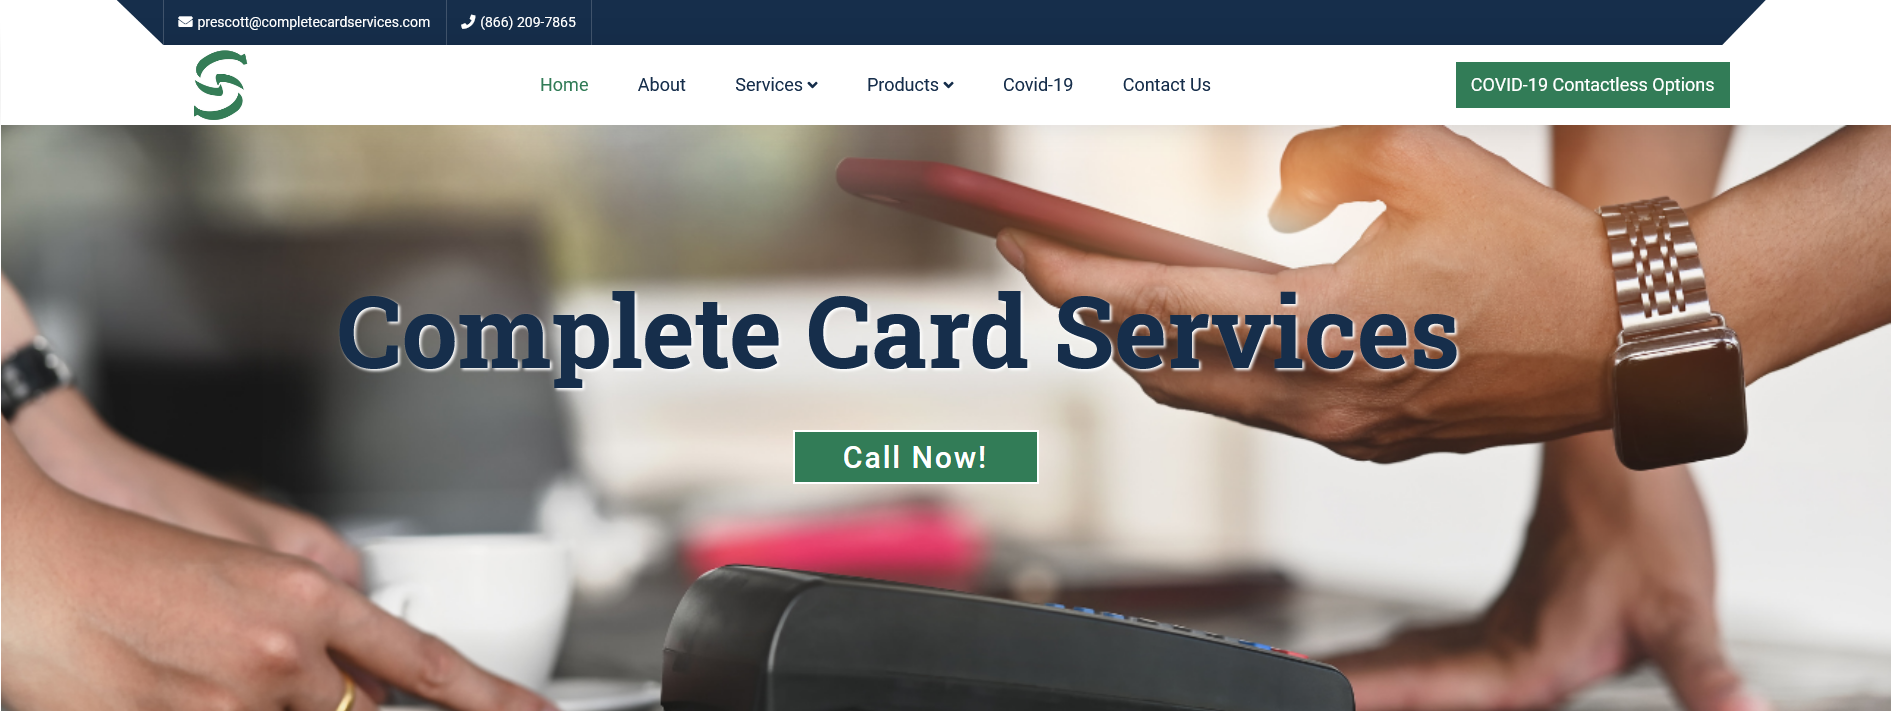 Complete Card Services